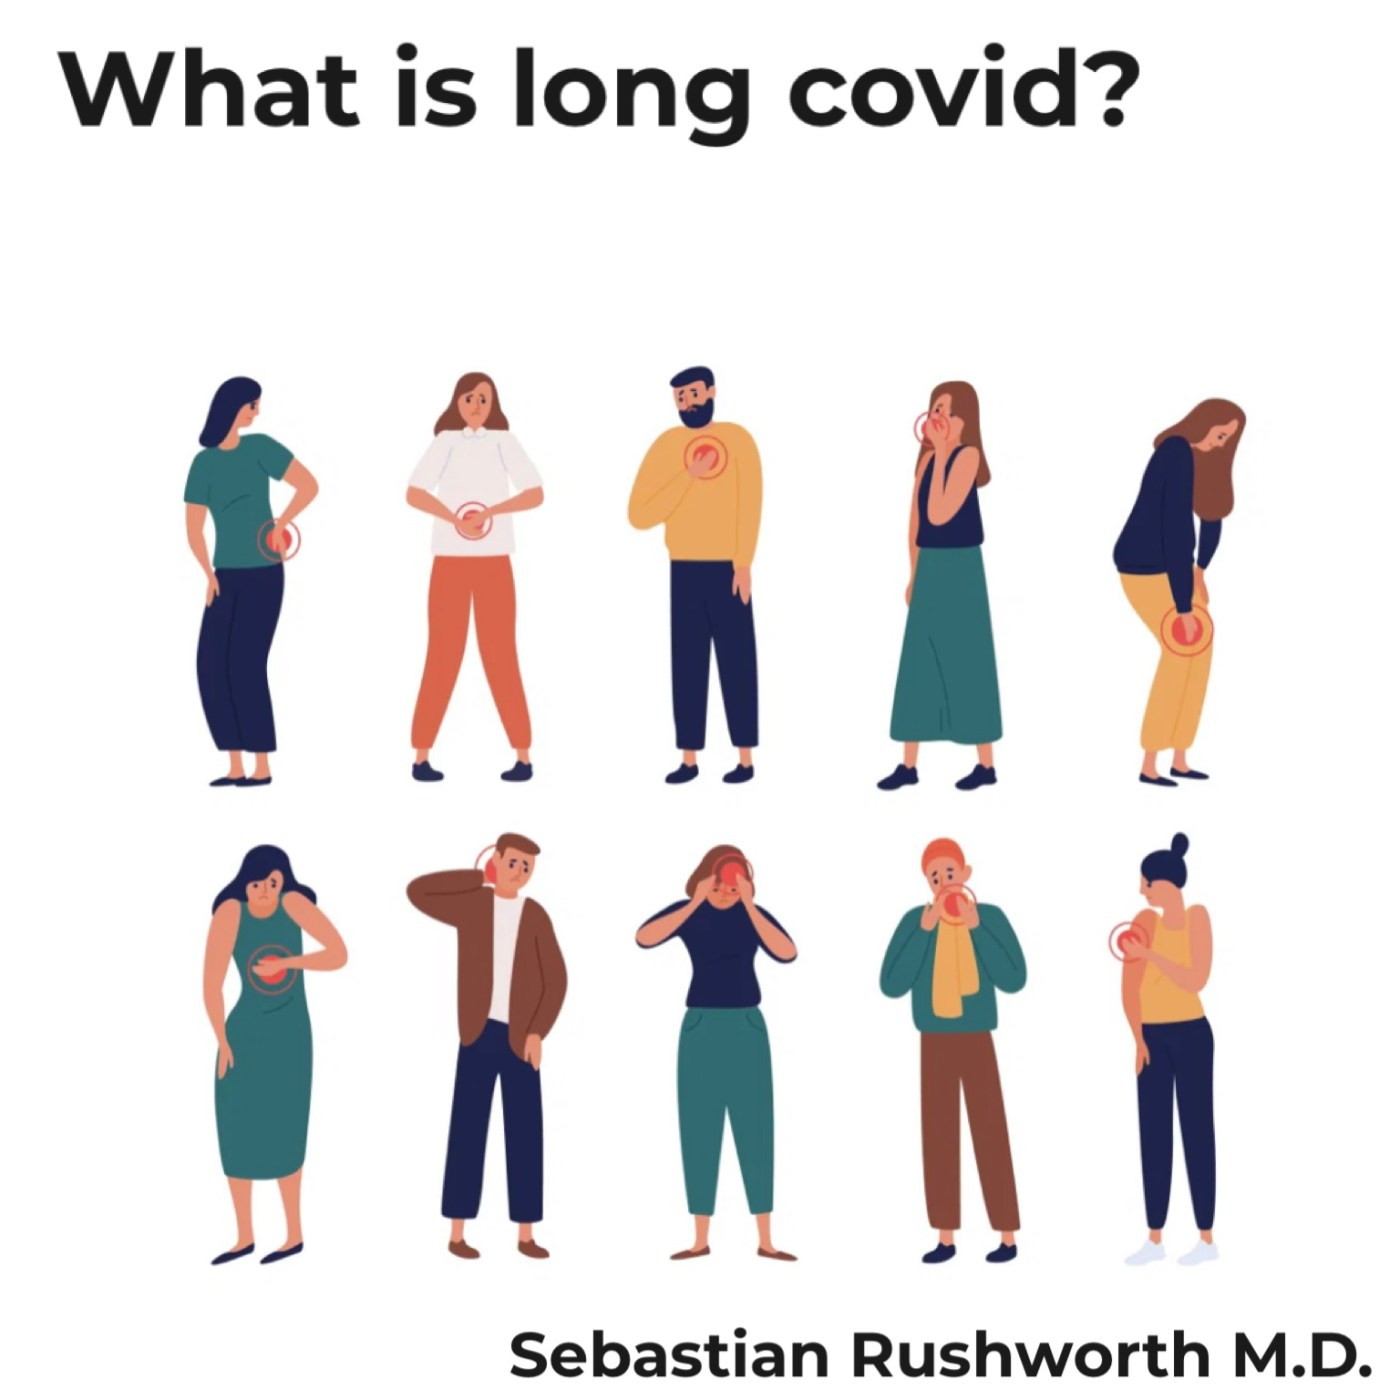 What is long covid